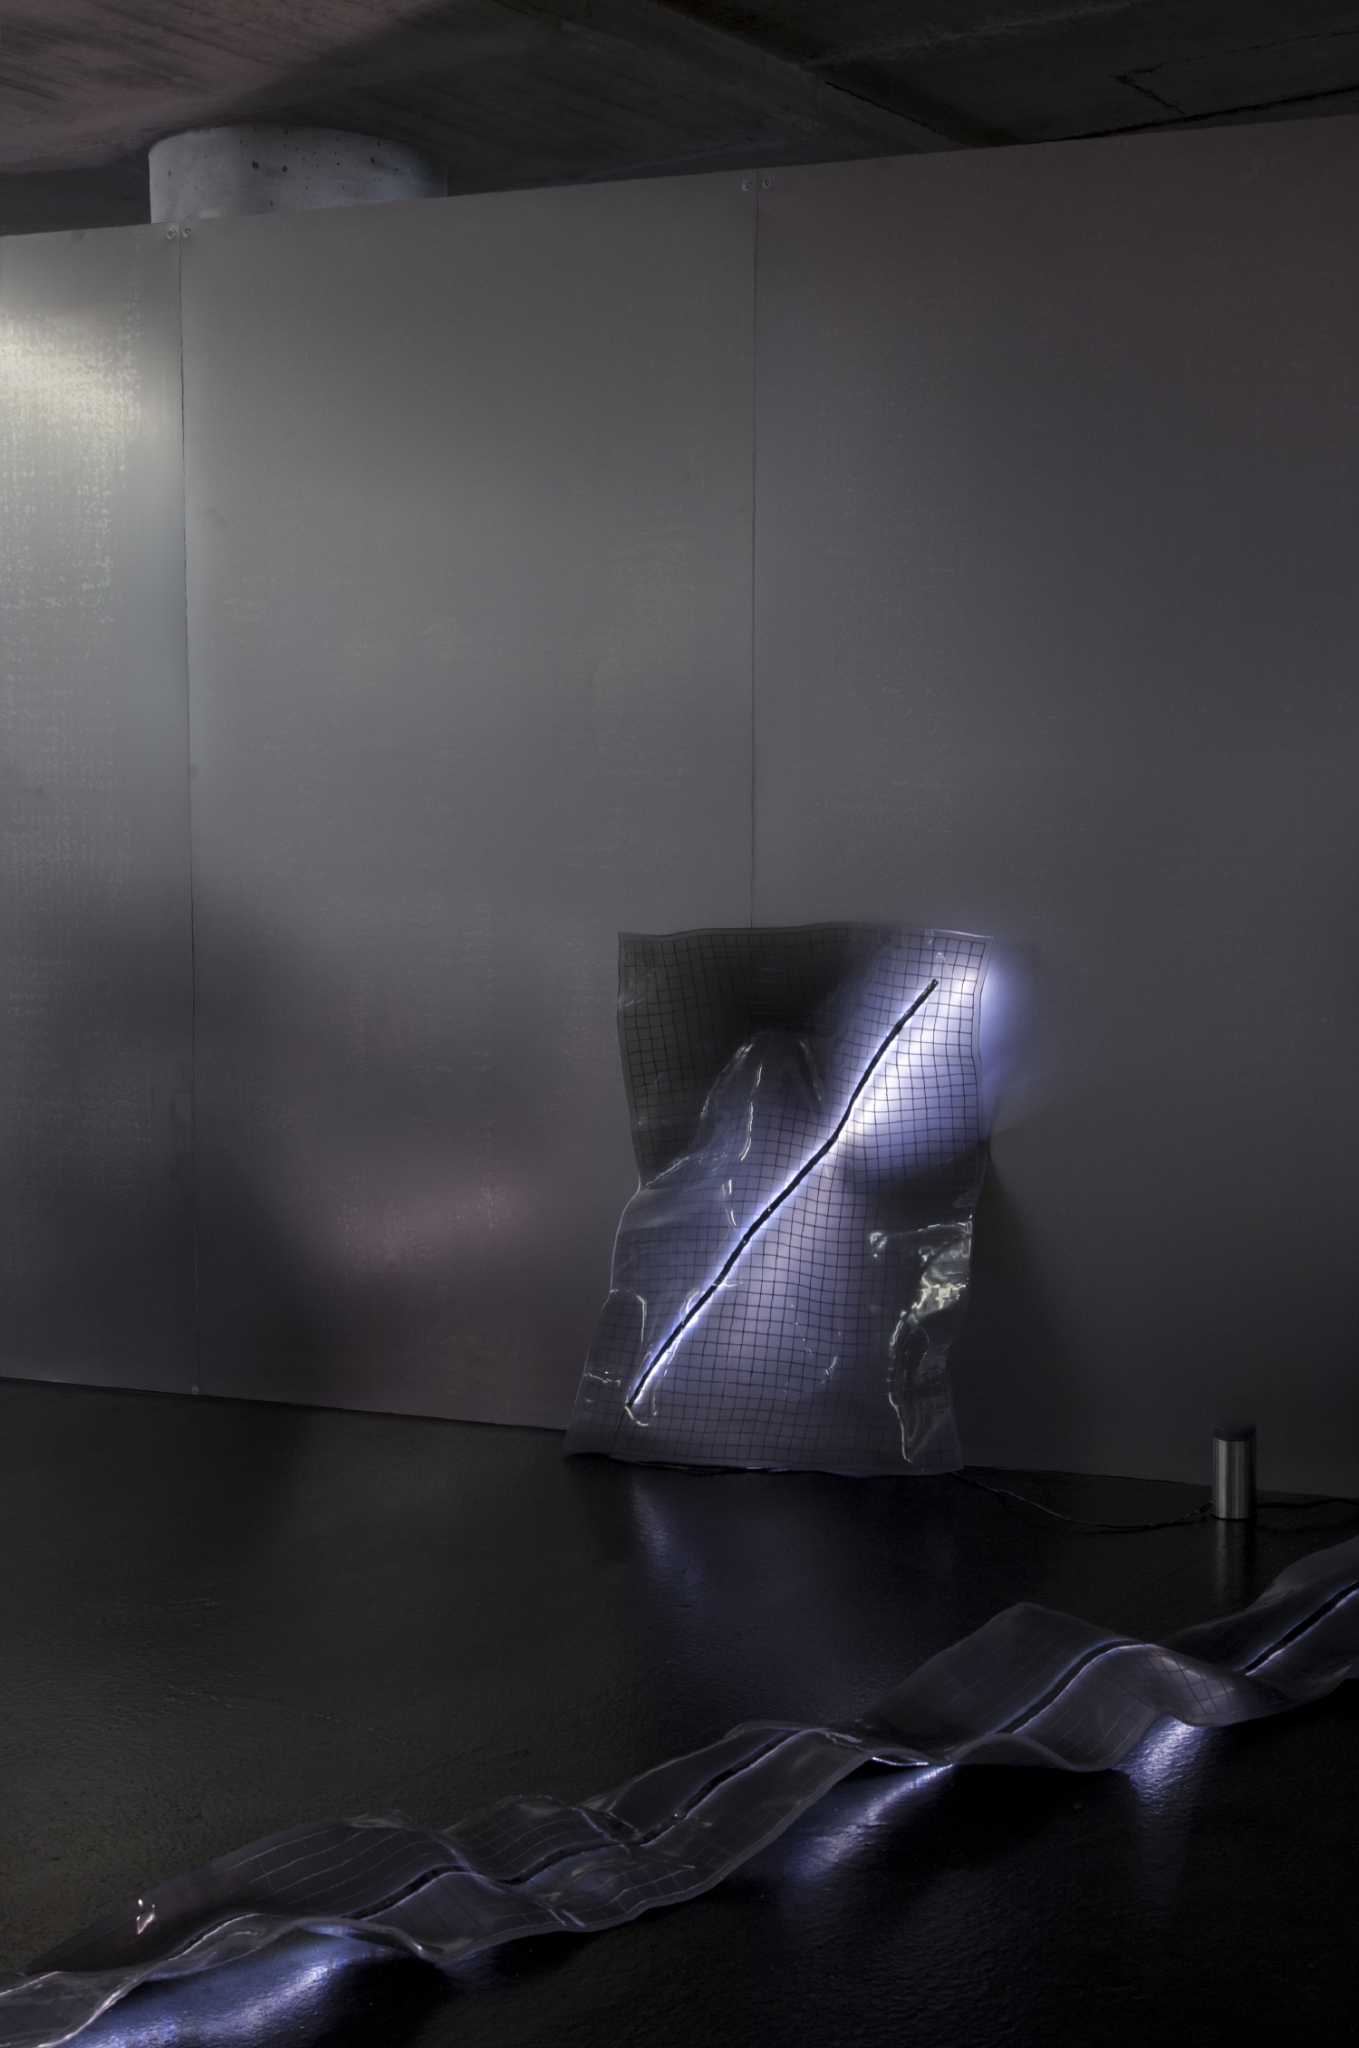 hans van sinderen Reinforced light object